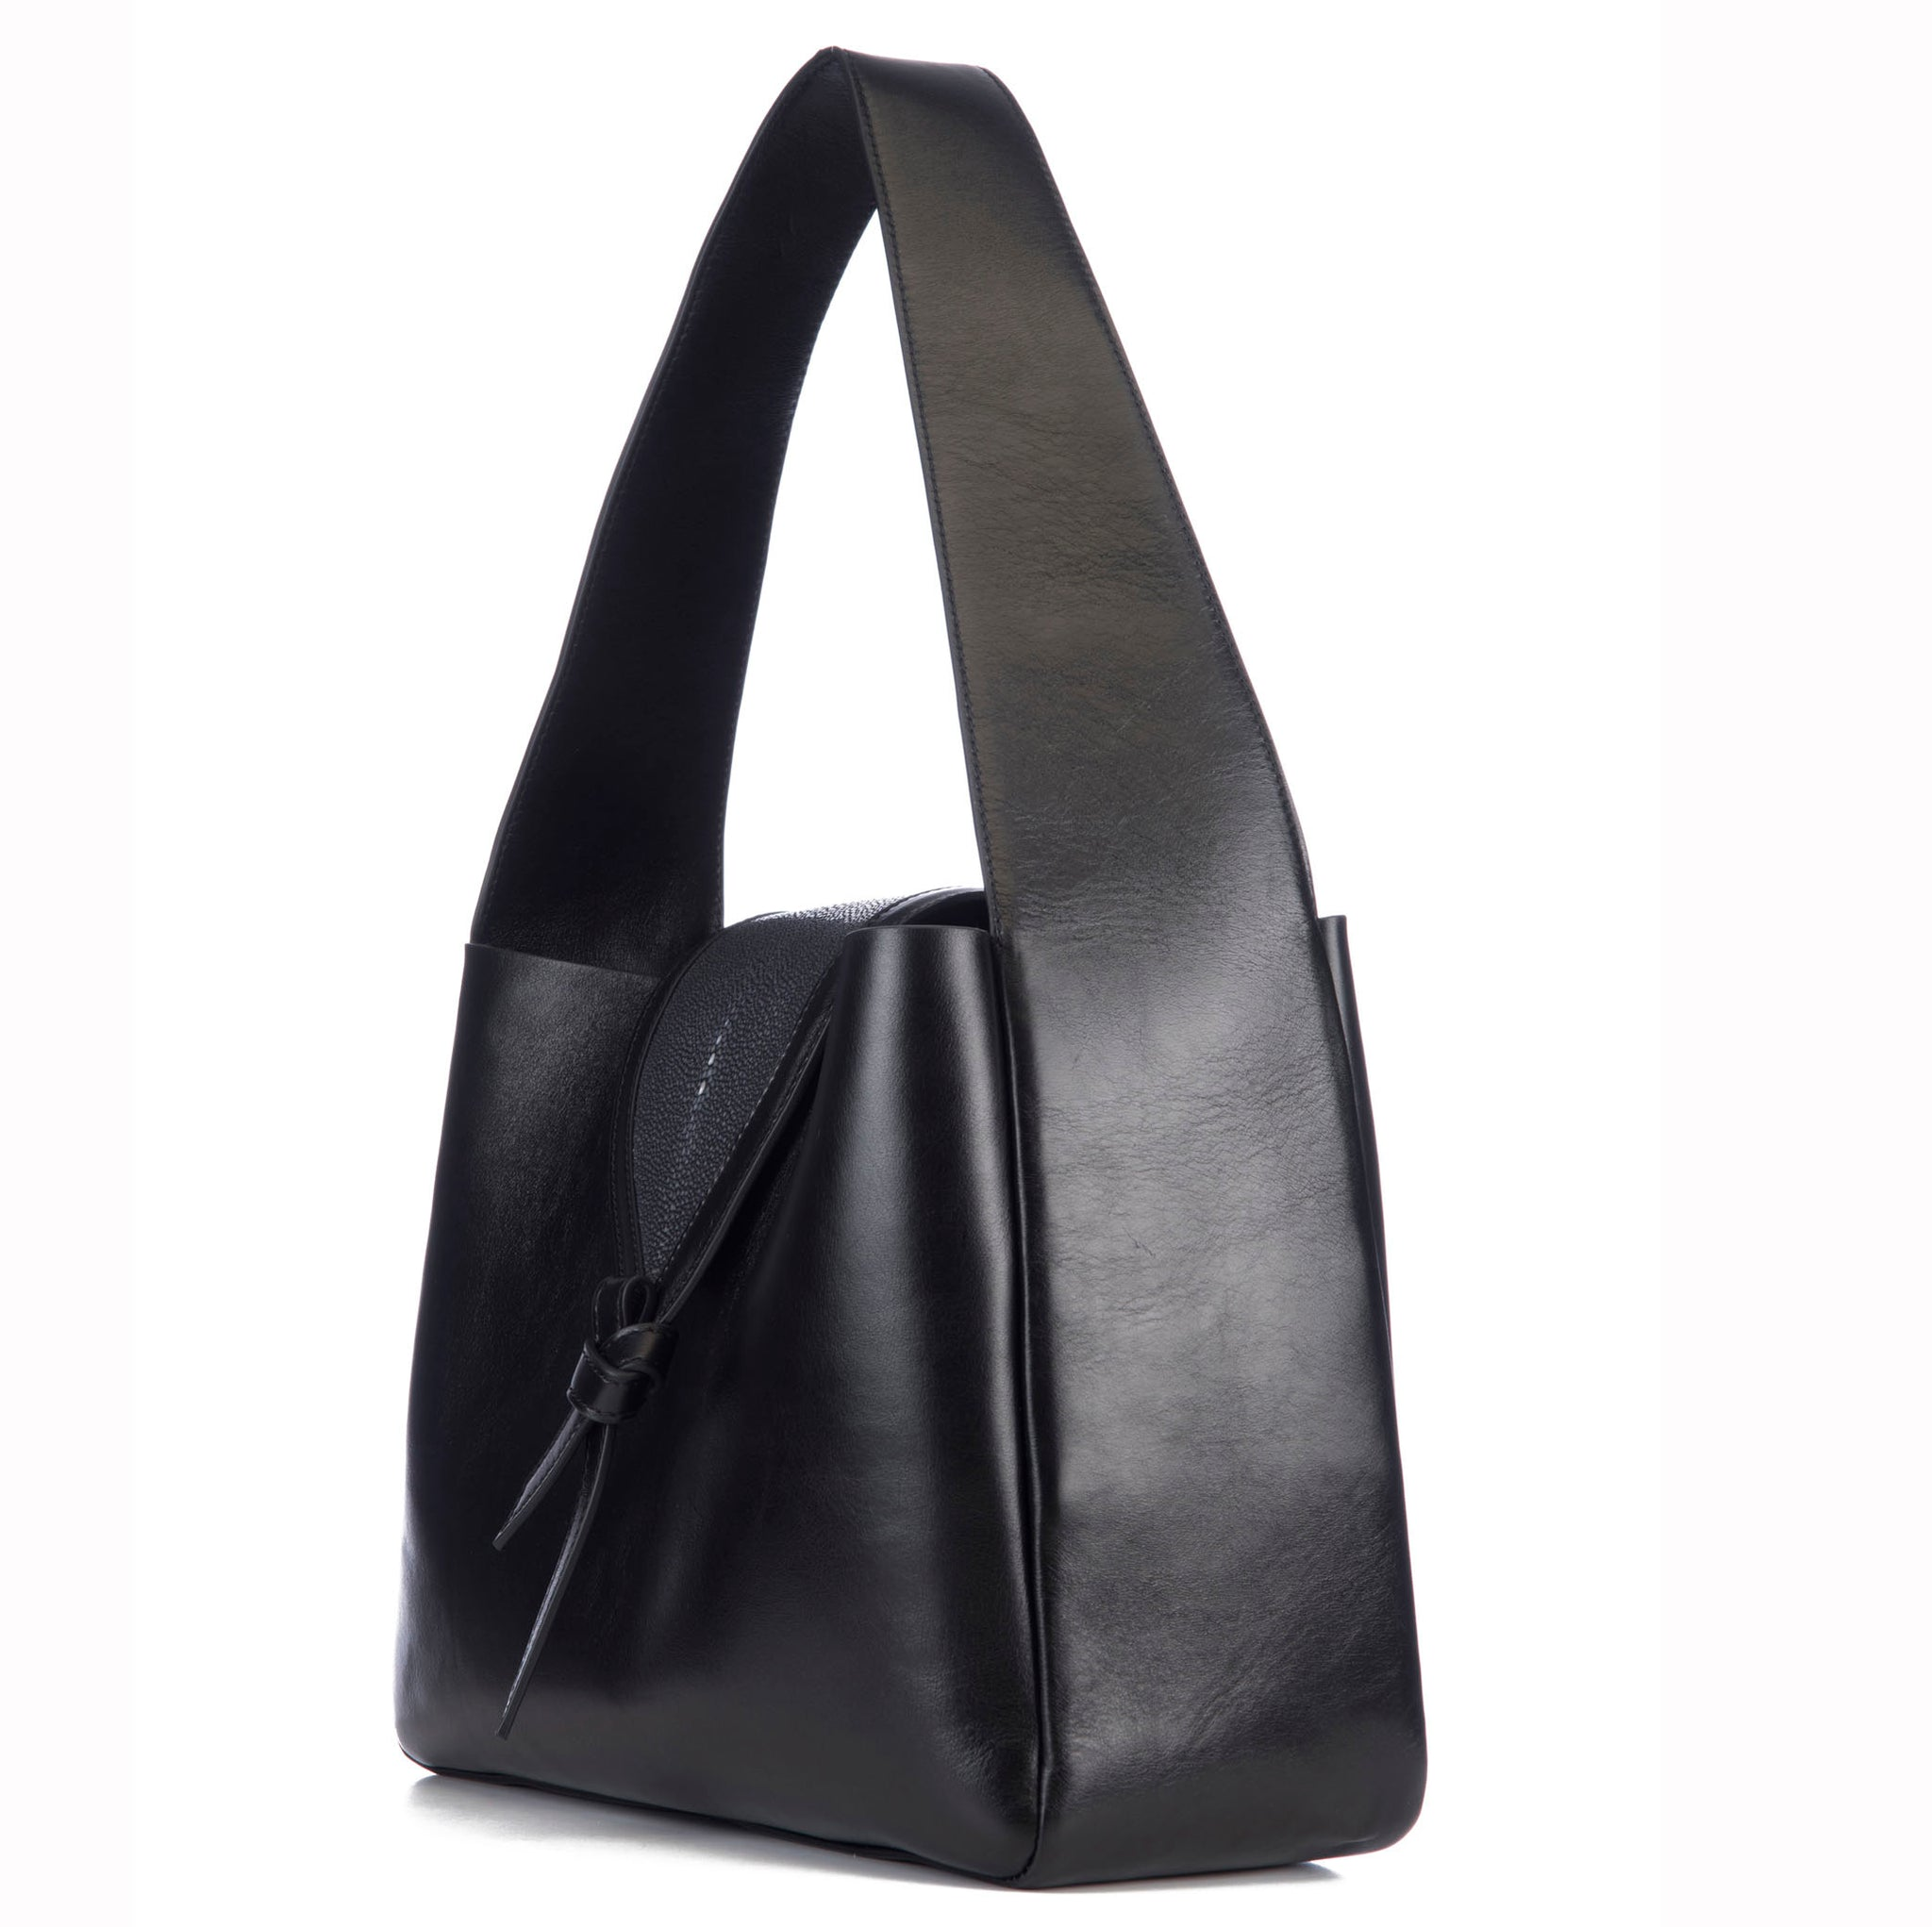 Eve Black Leather Shoulder Tote With Black Shagreen Flap And Leather Knot Detail Side View - Vivo Direct